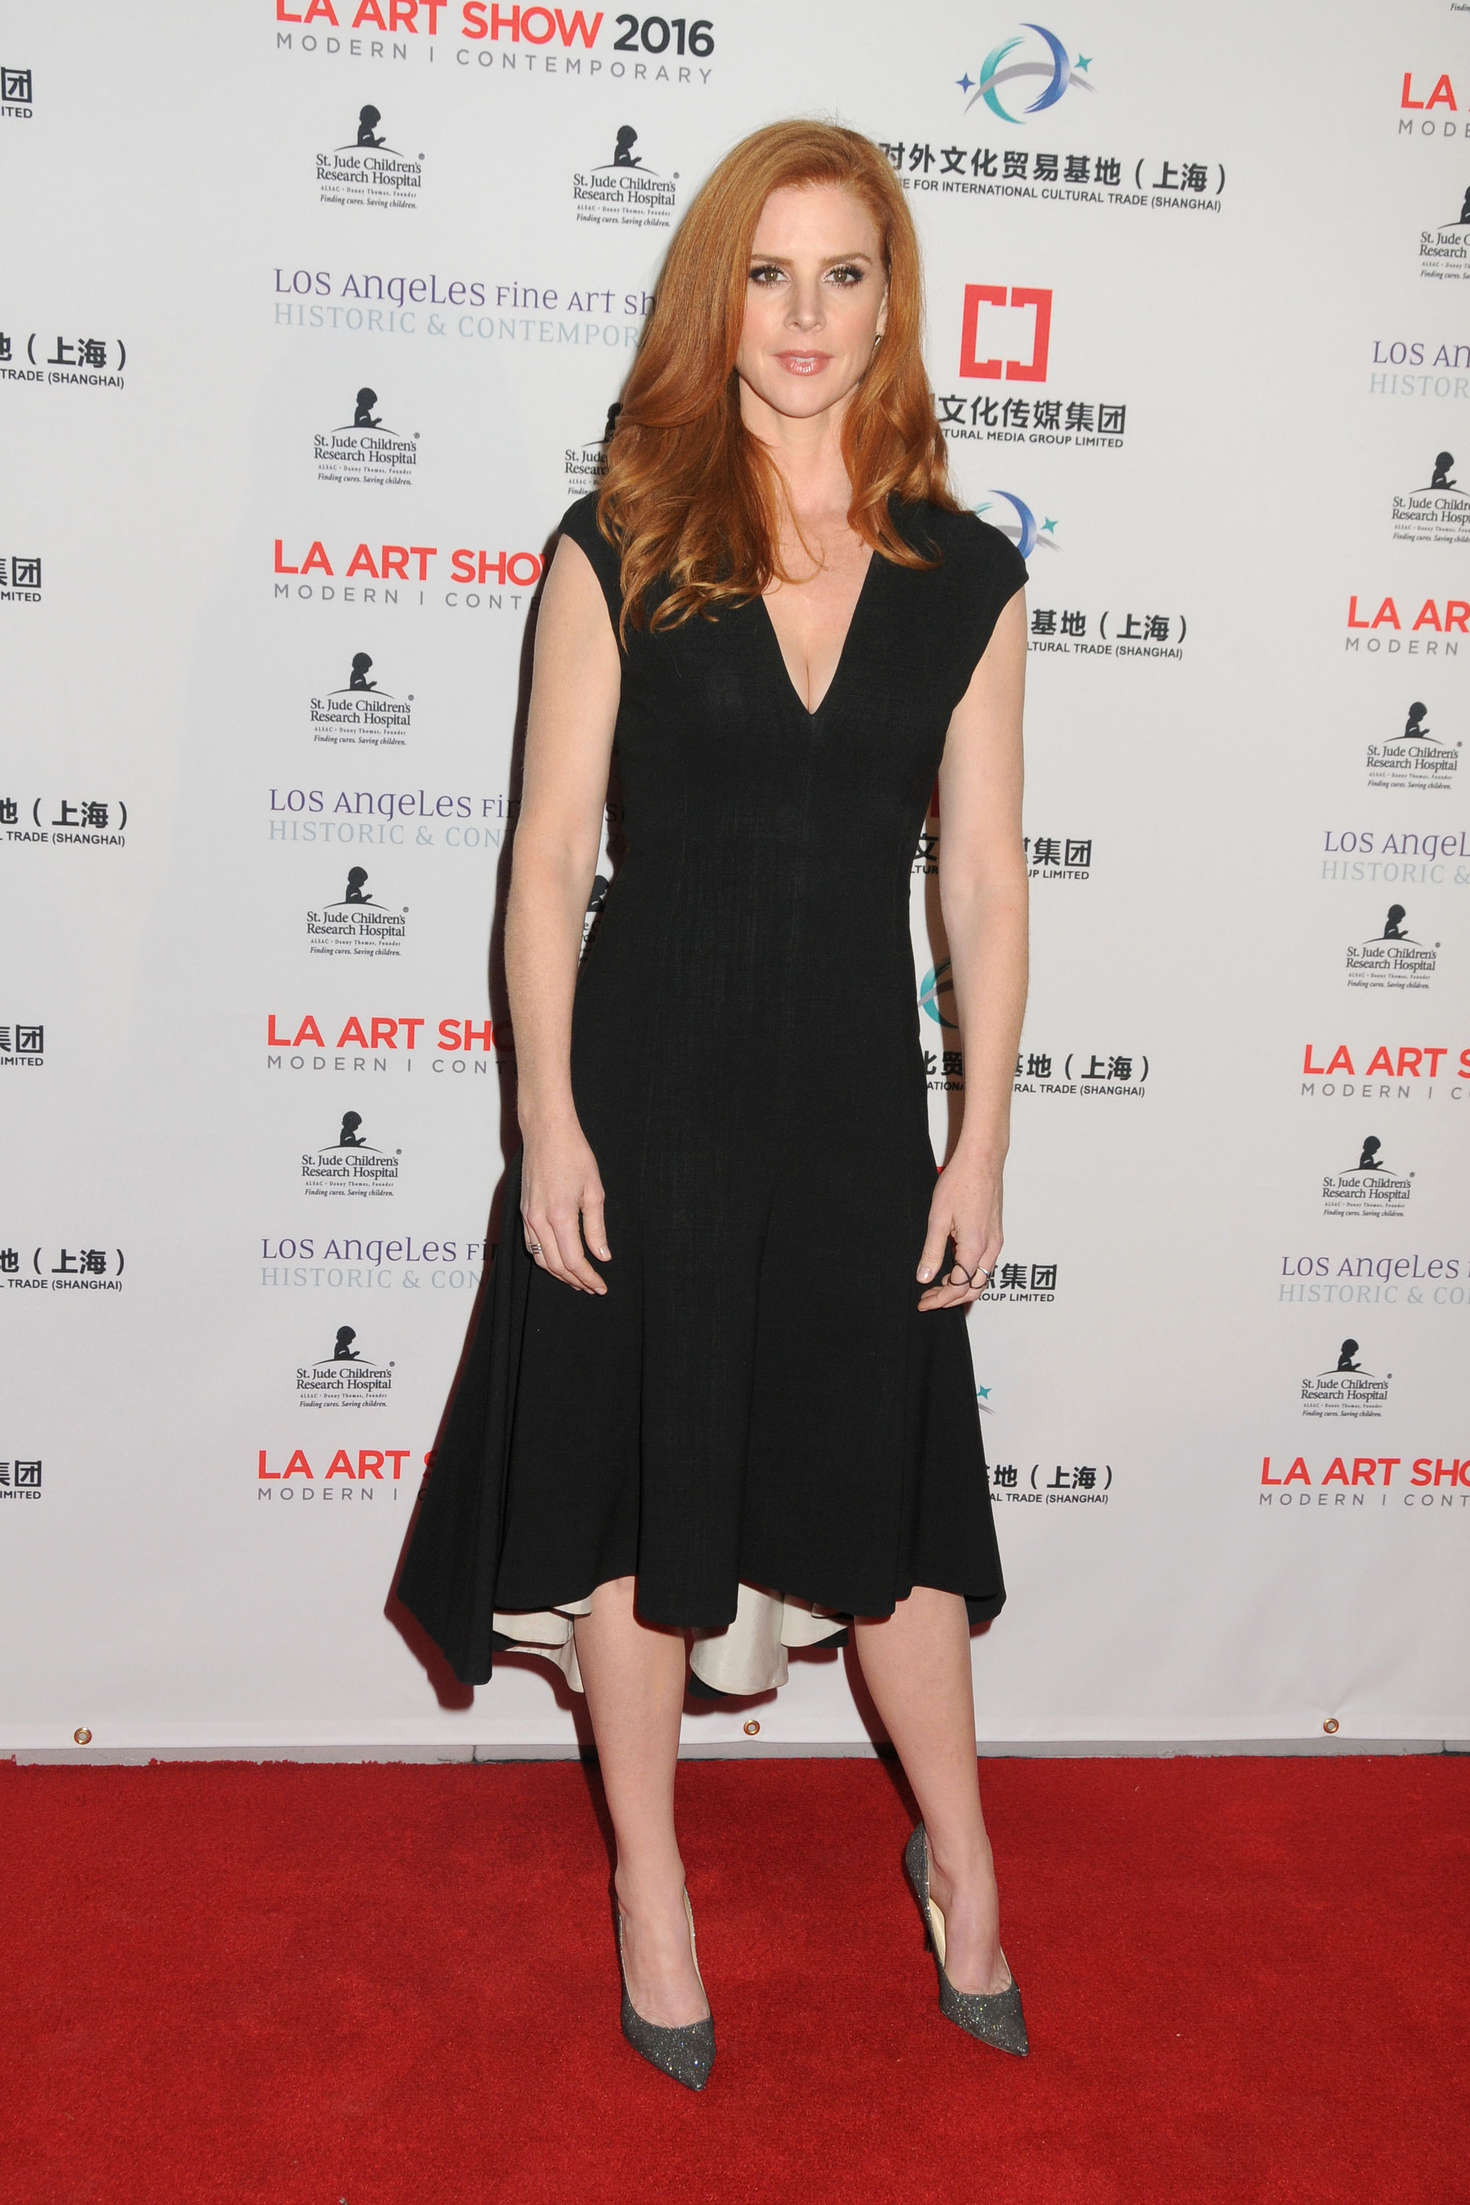 Sarah Rafferty The Los Angeles Art Show and The Los Angeles Fine Art Show in Los Angeles